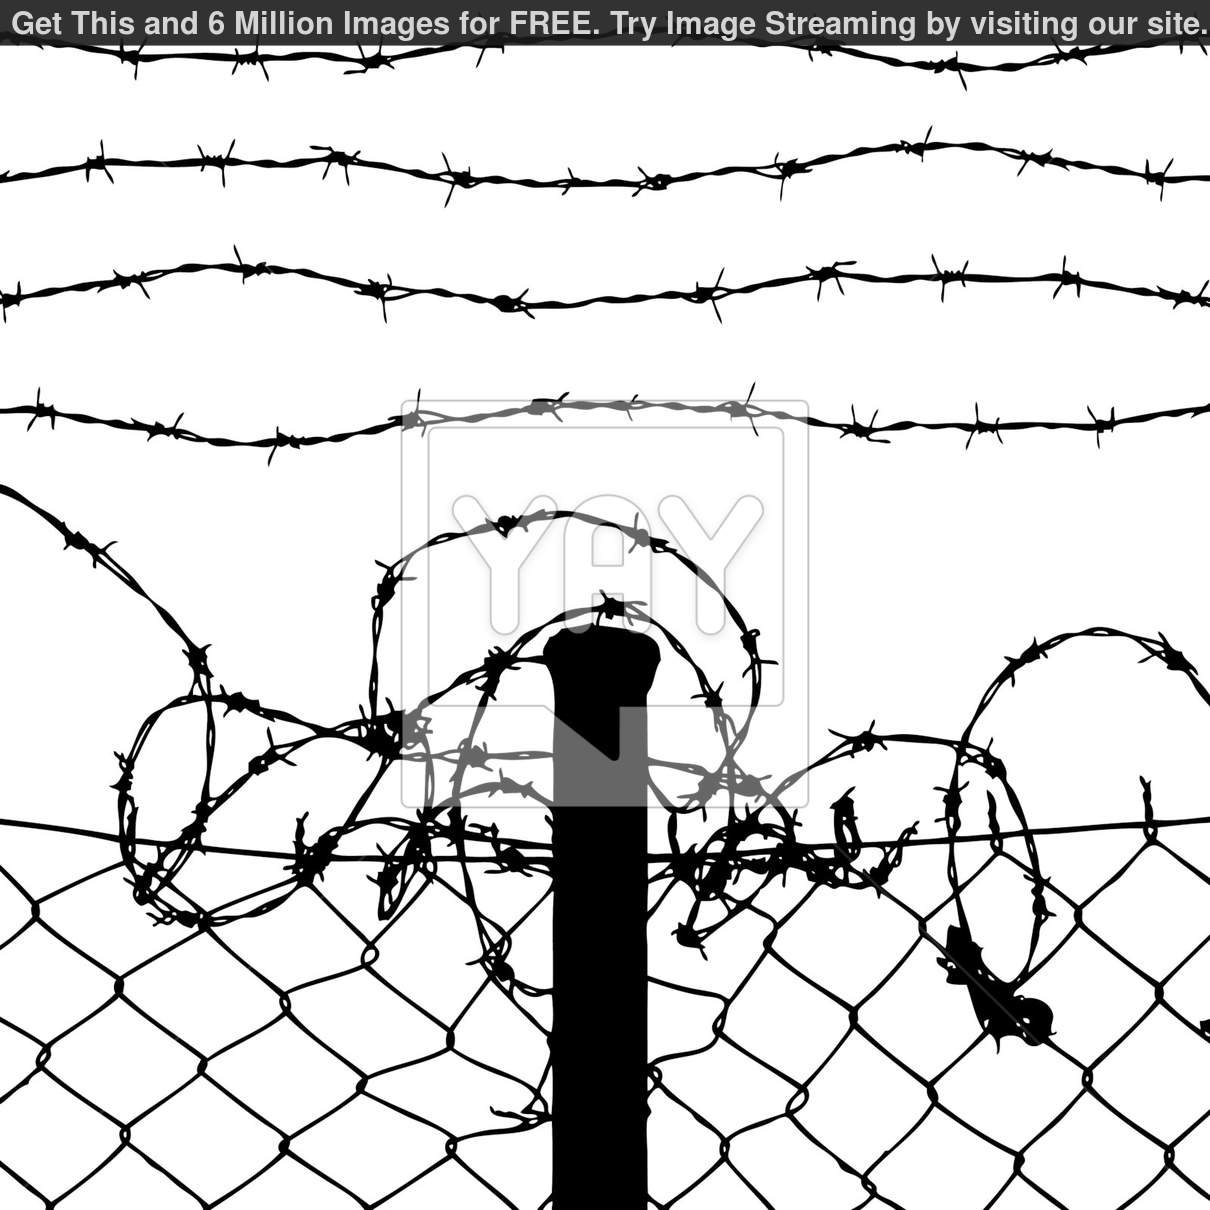 Wire clipart barbe Net Roslonek Canyon Pictures Fence